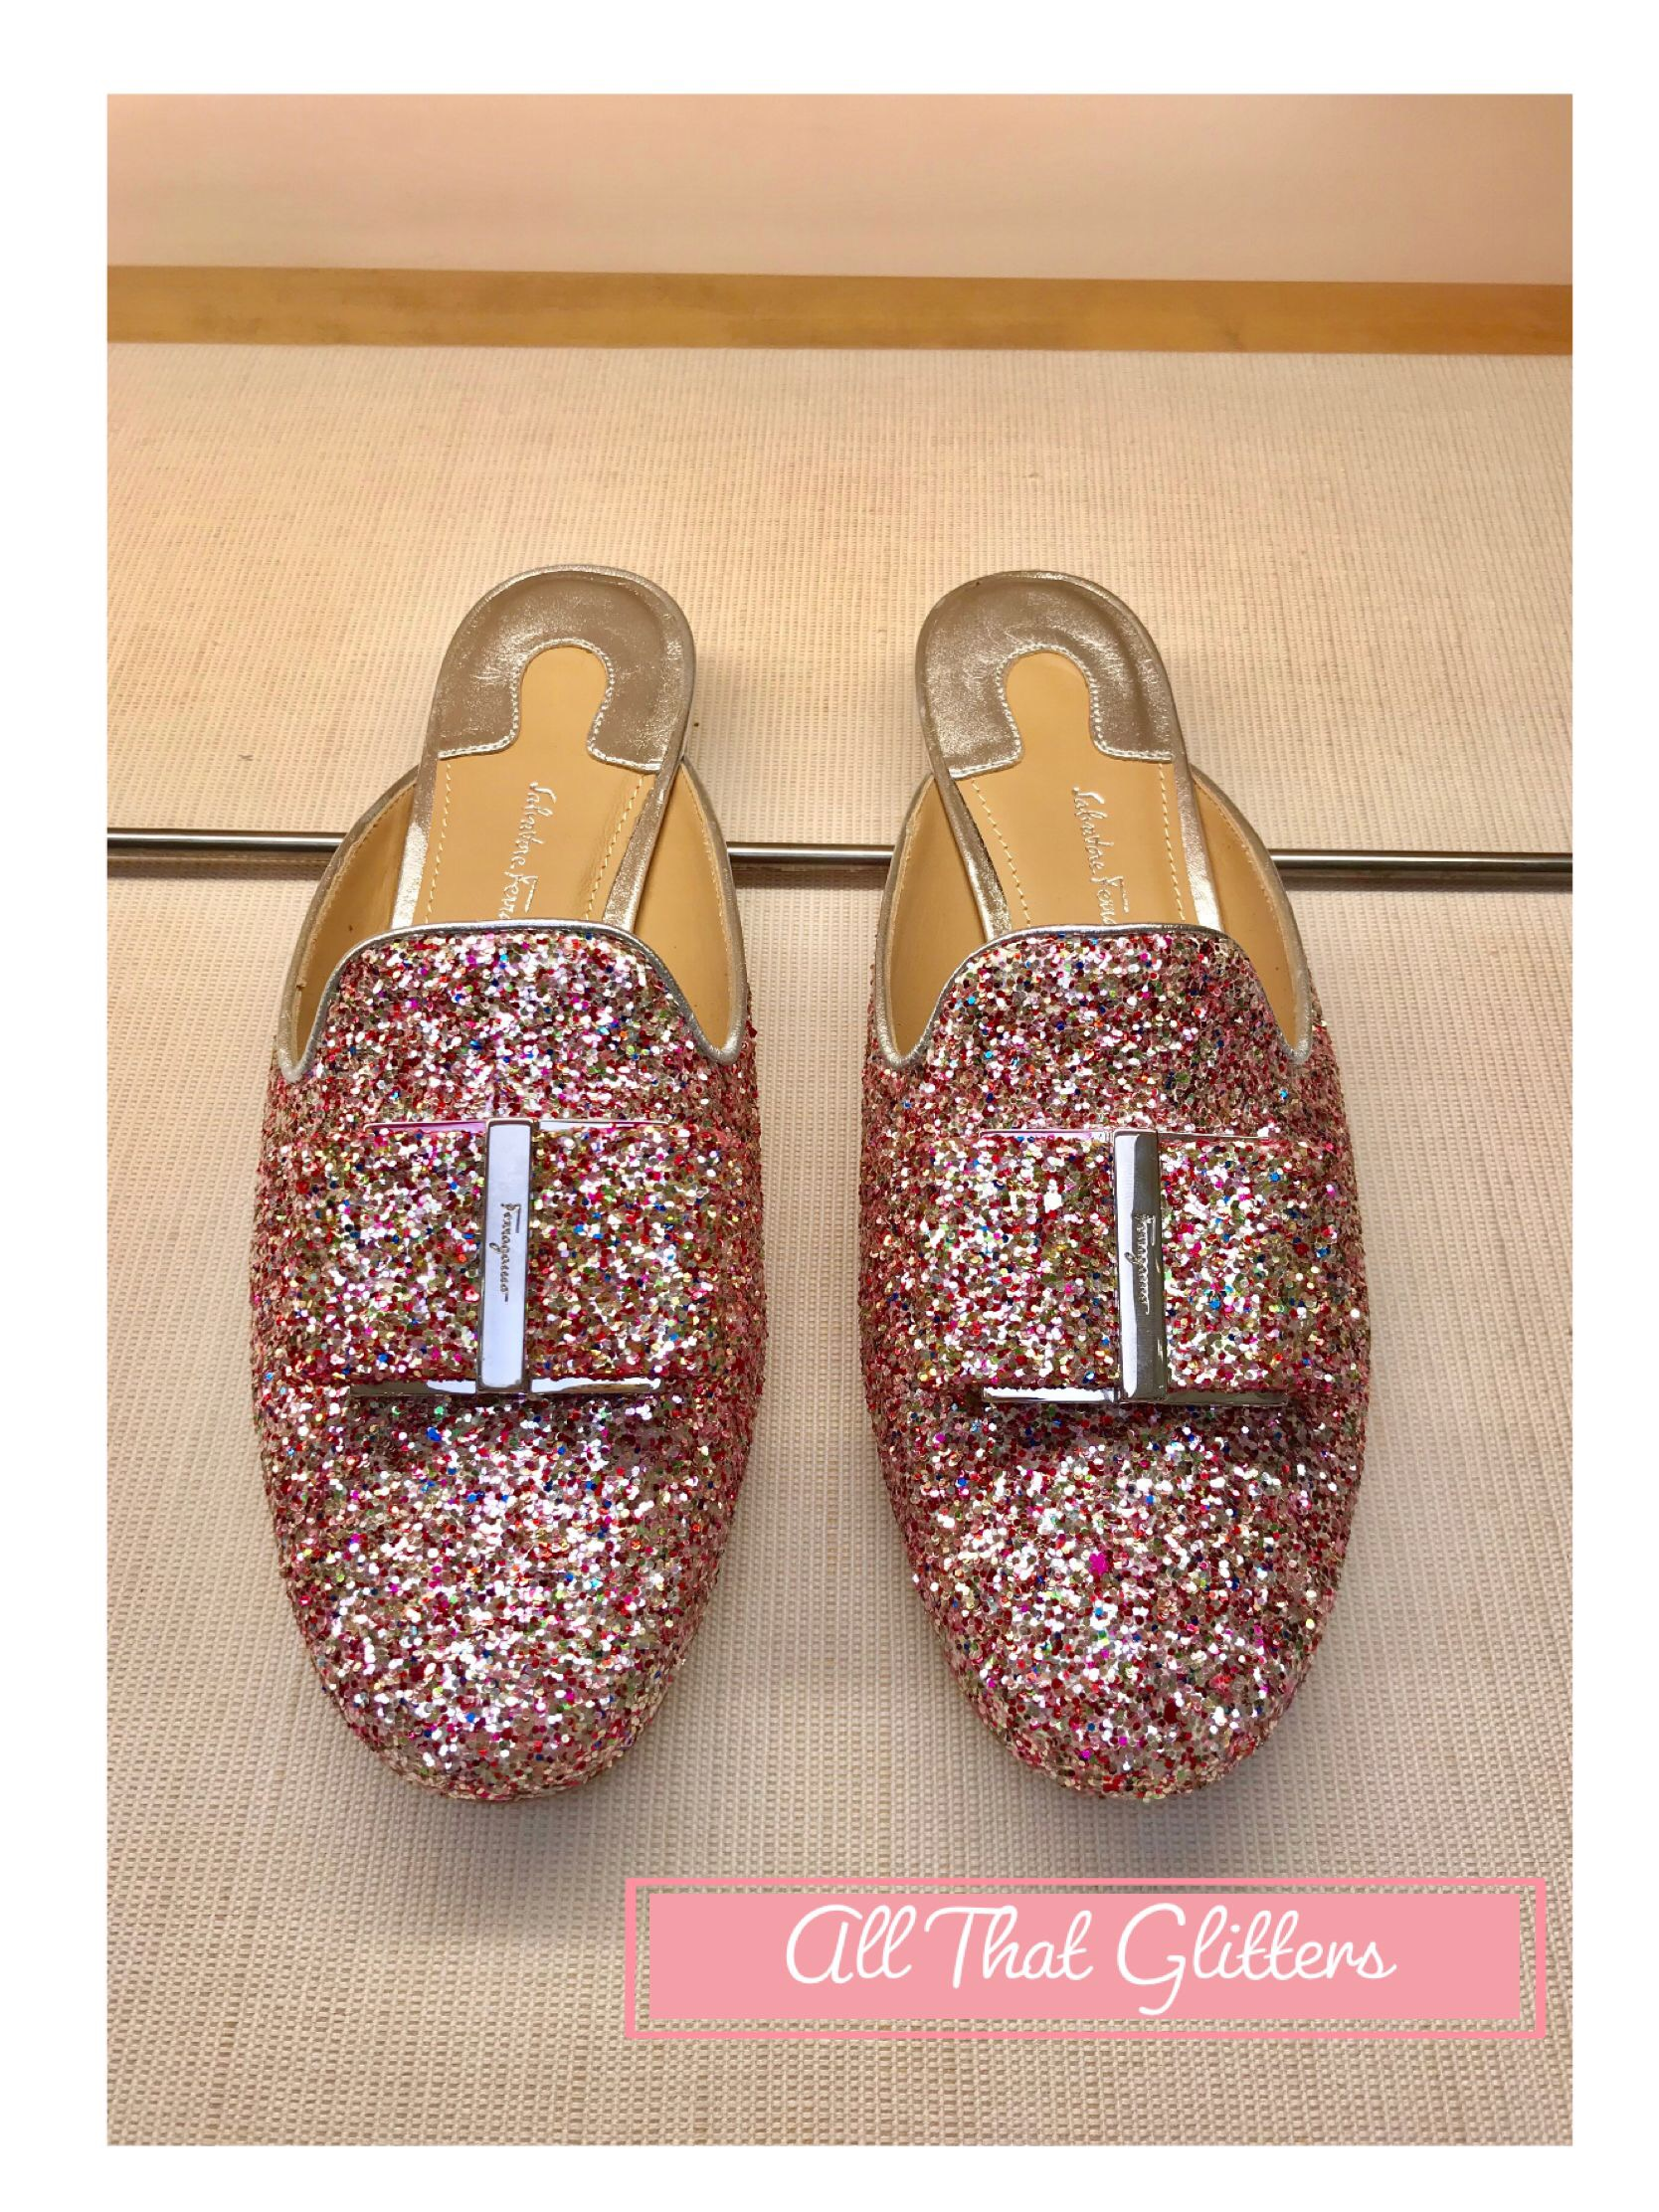 Ferragamo Glitter Shoes